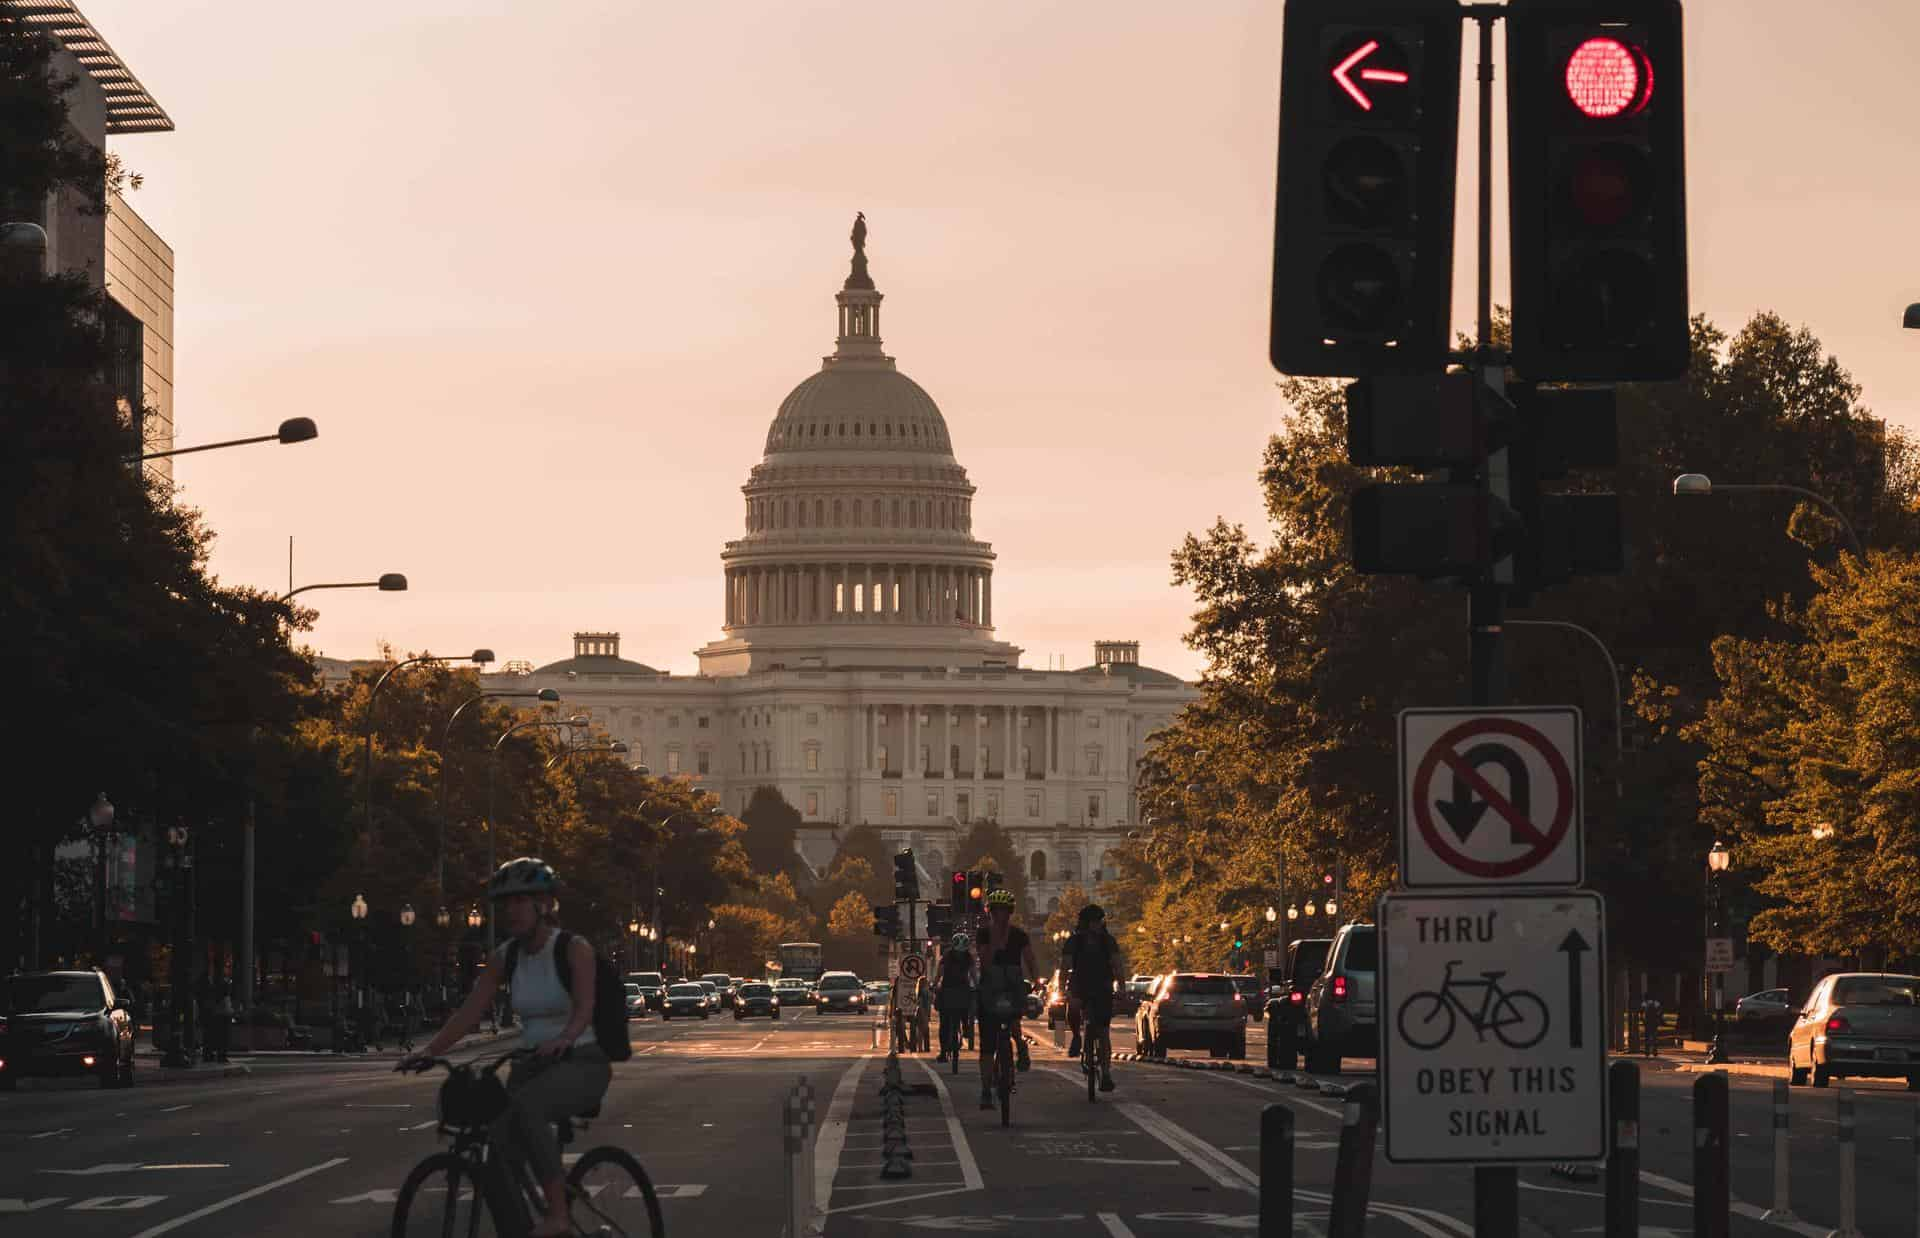 The Capitol building at dusk with streetlights in the foreground